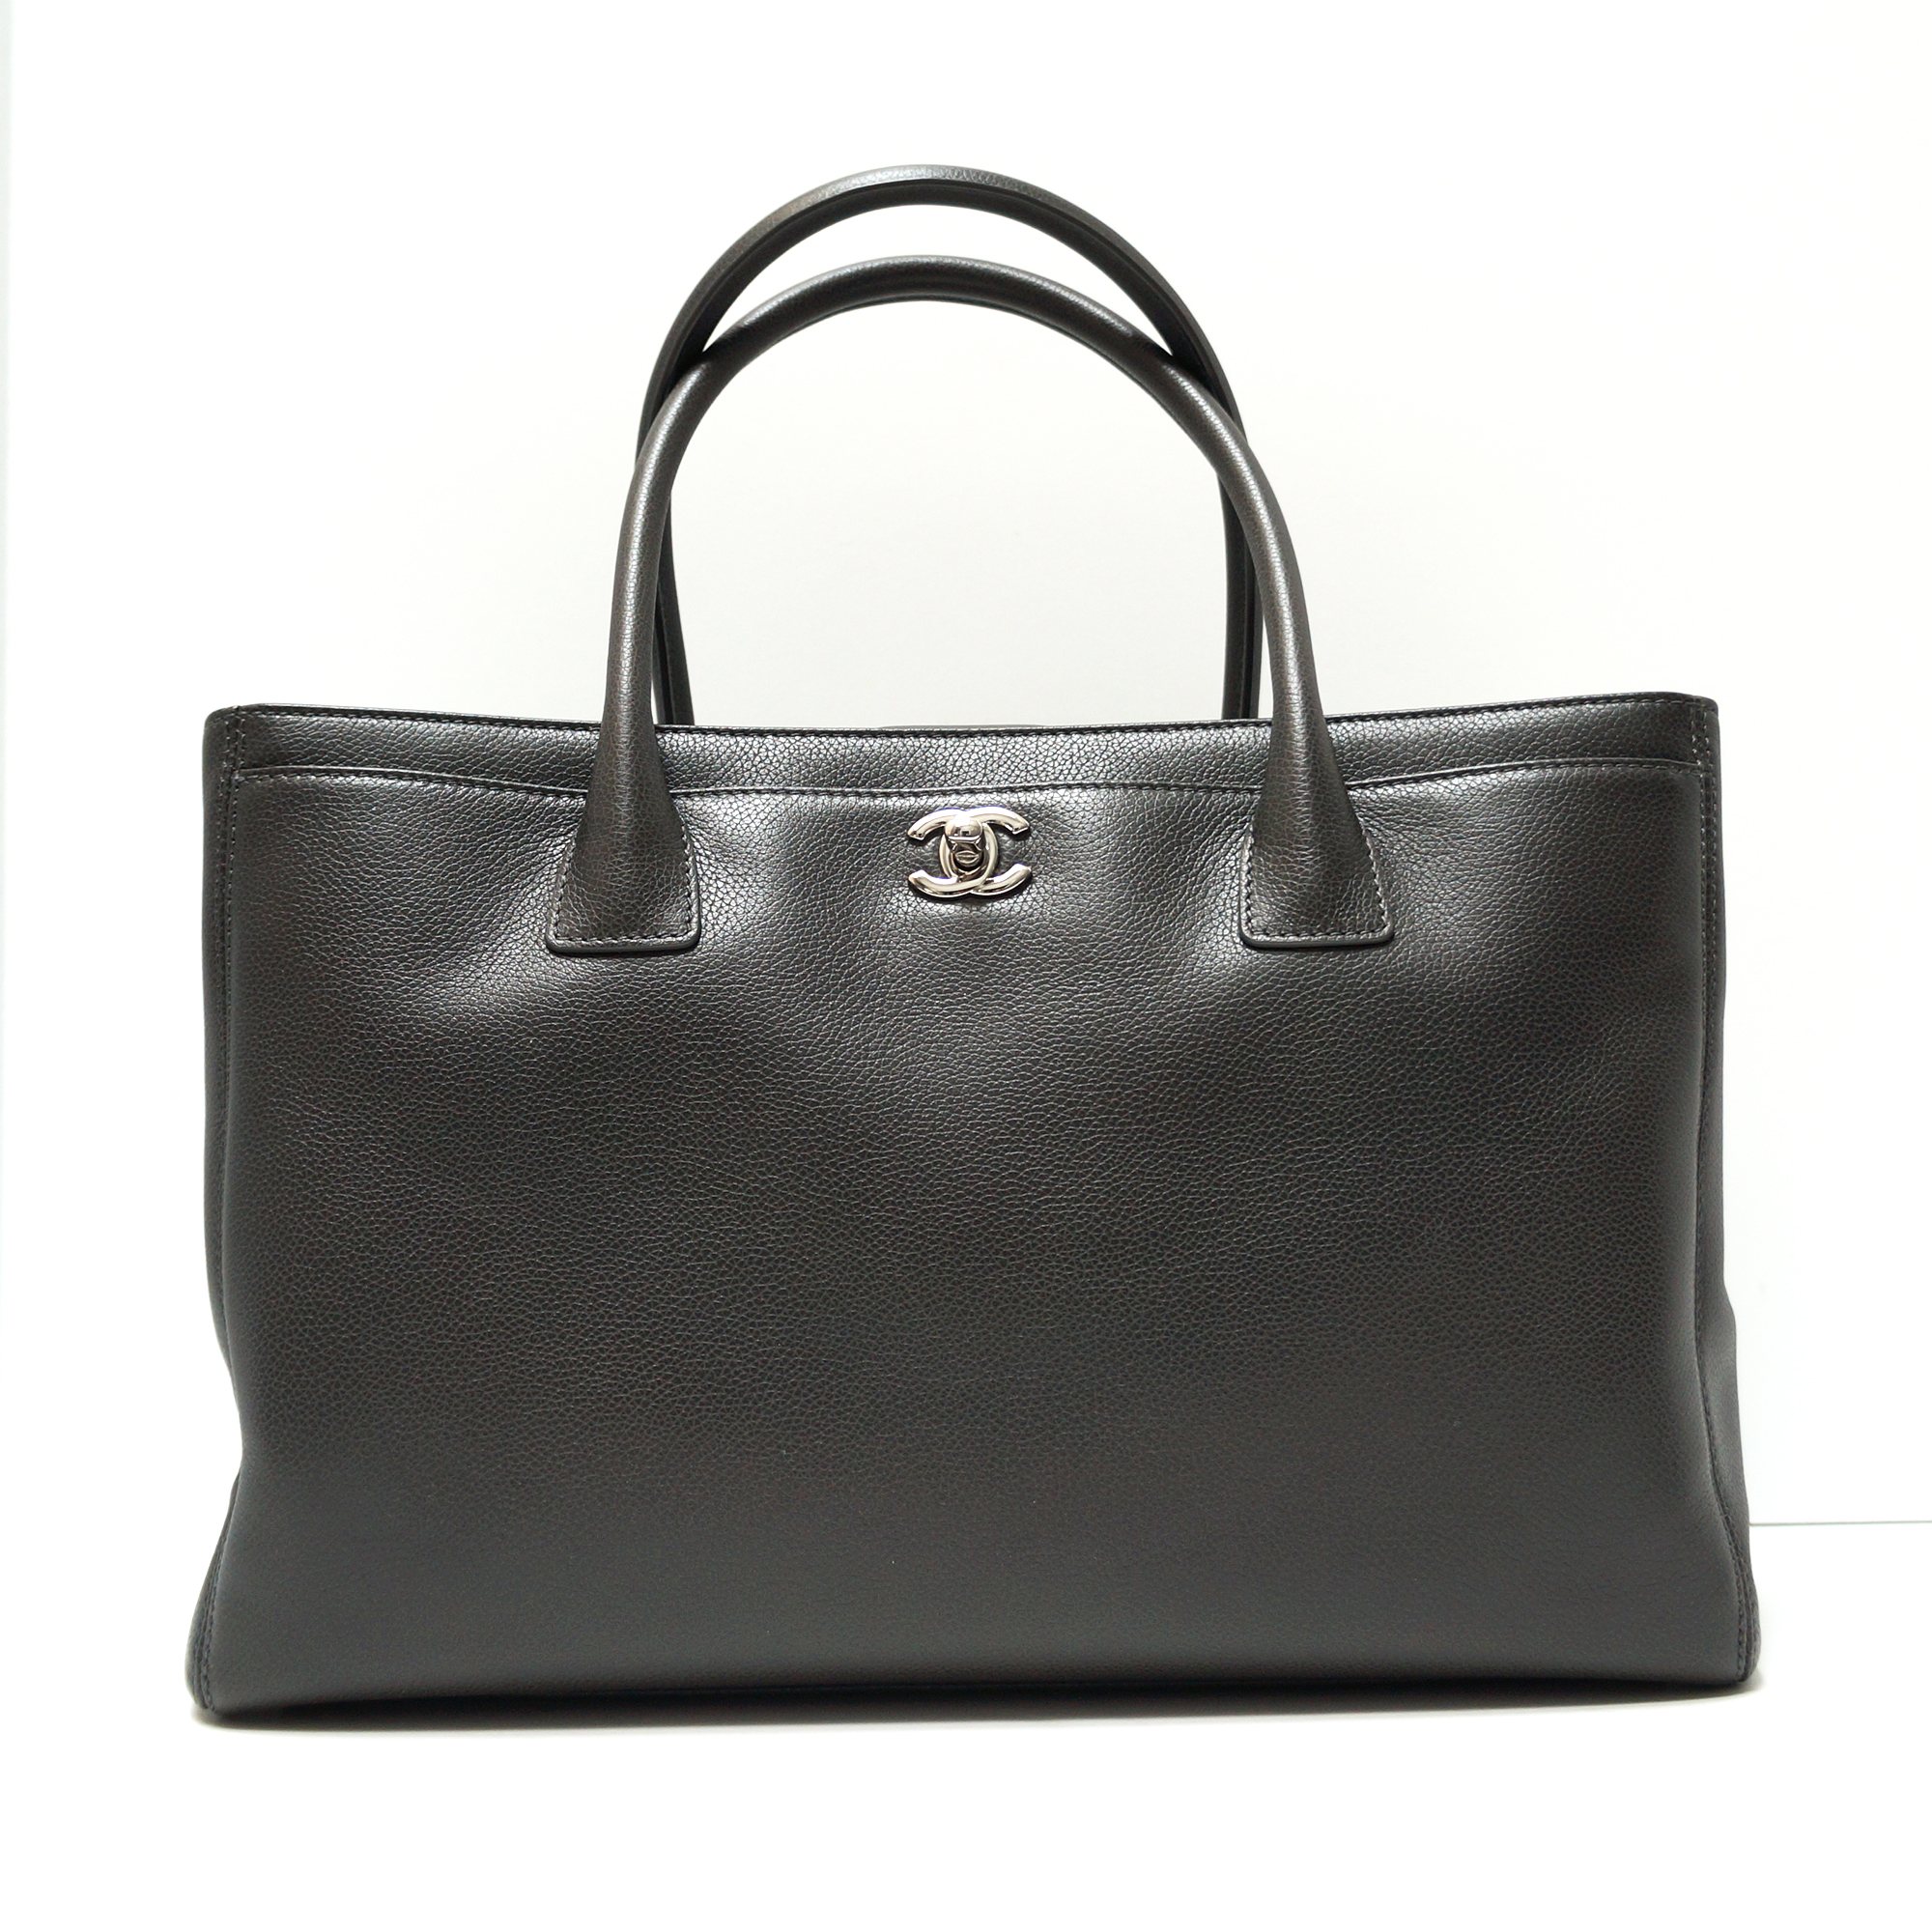 Chanel Executive Cerf Tote